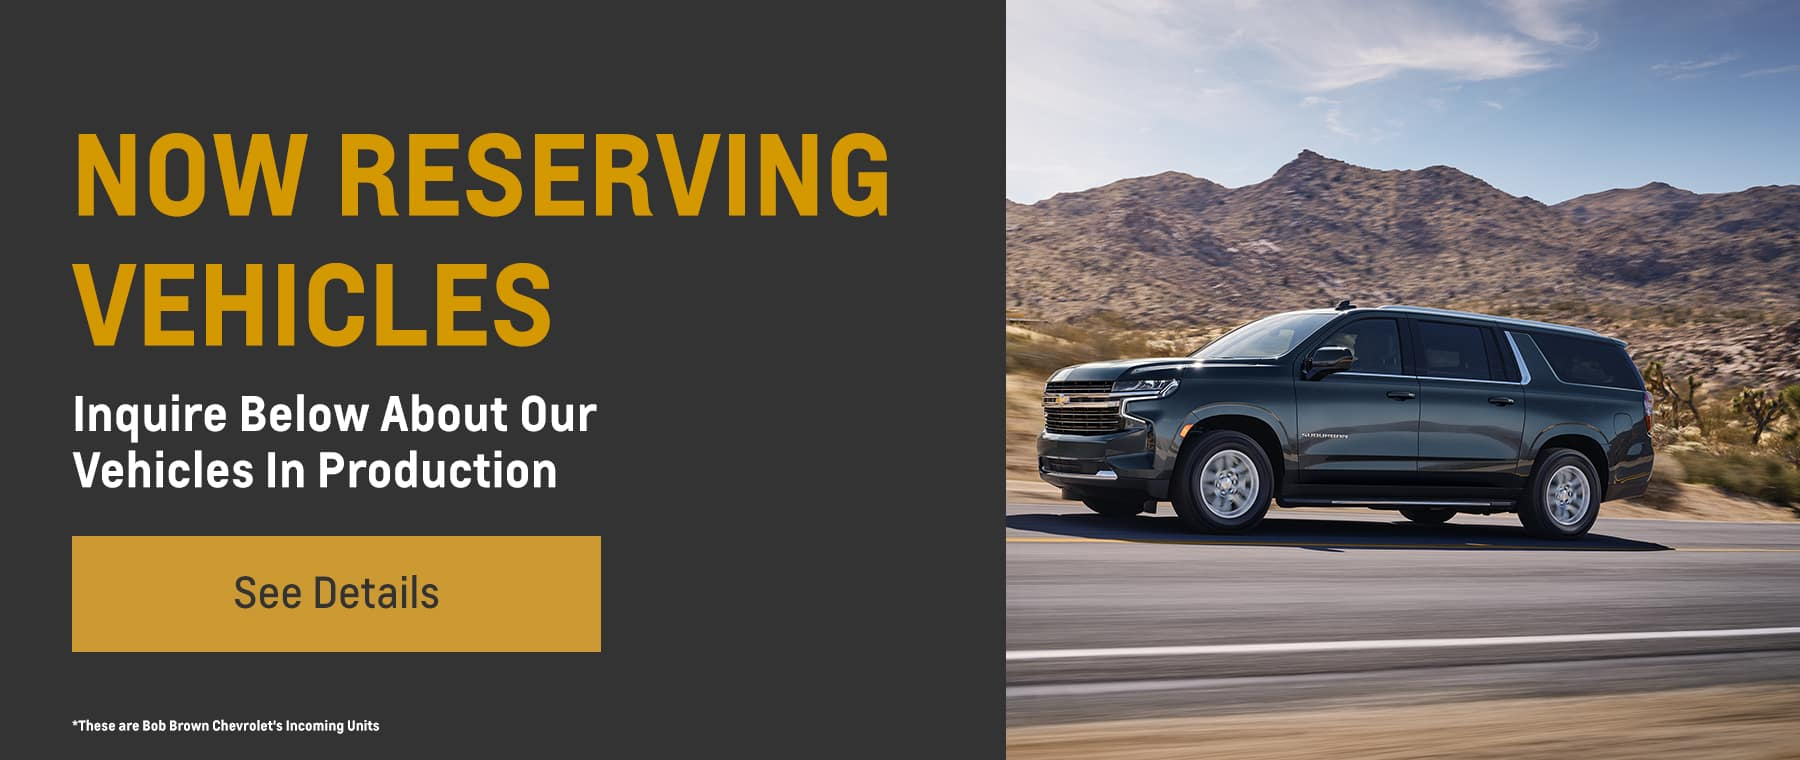 Now Reserving Vehicles!